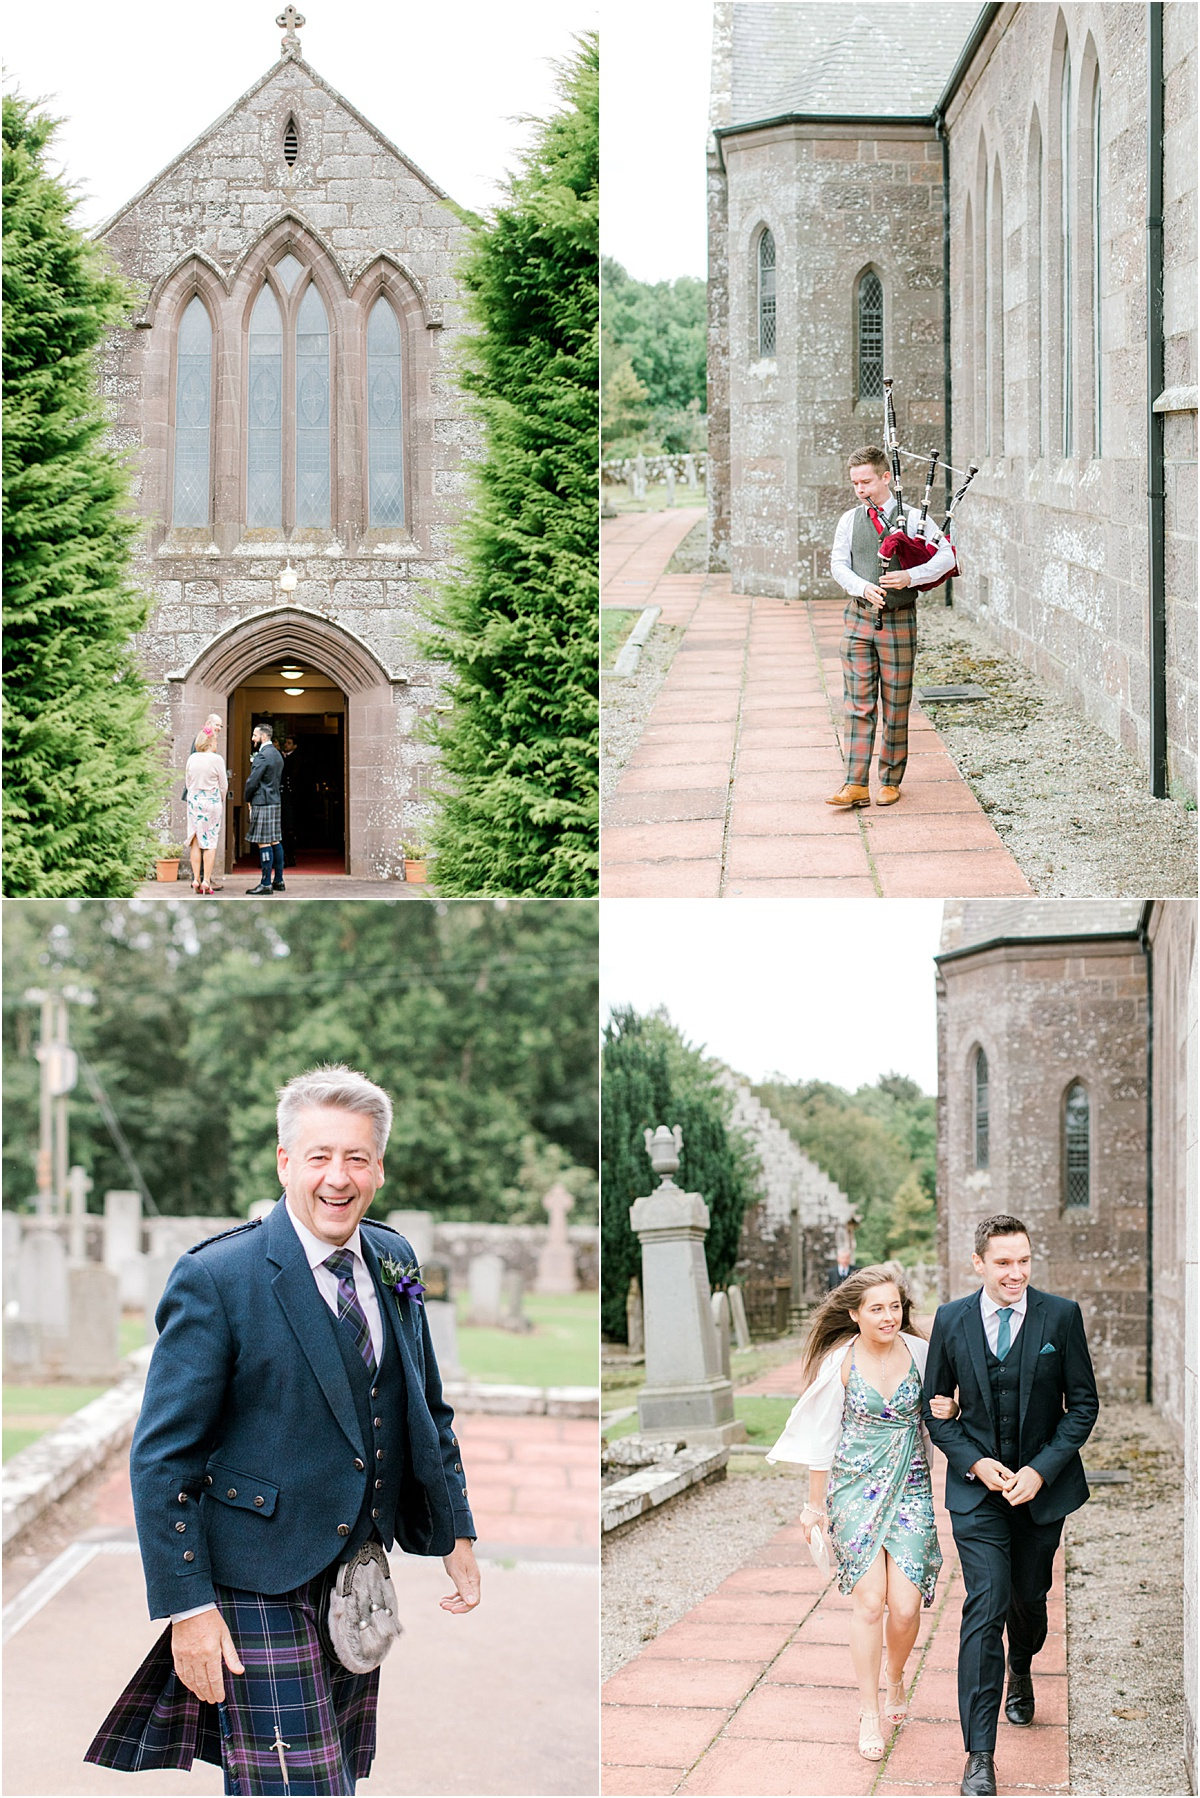 Elsick House Wedding,Fine Art Wedding Photographers,The Gibsons,elegant wedding photographers glasgow,light and bright wedding photographers scotland,natural wedding photographers,romantic photographers Scotland,